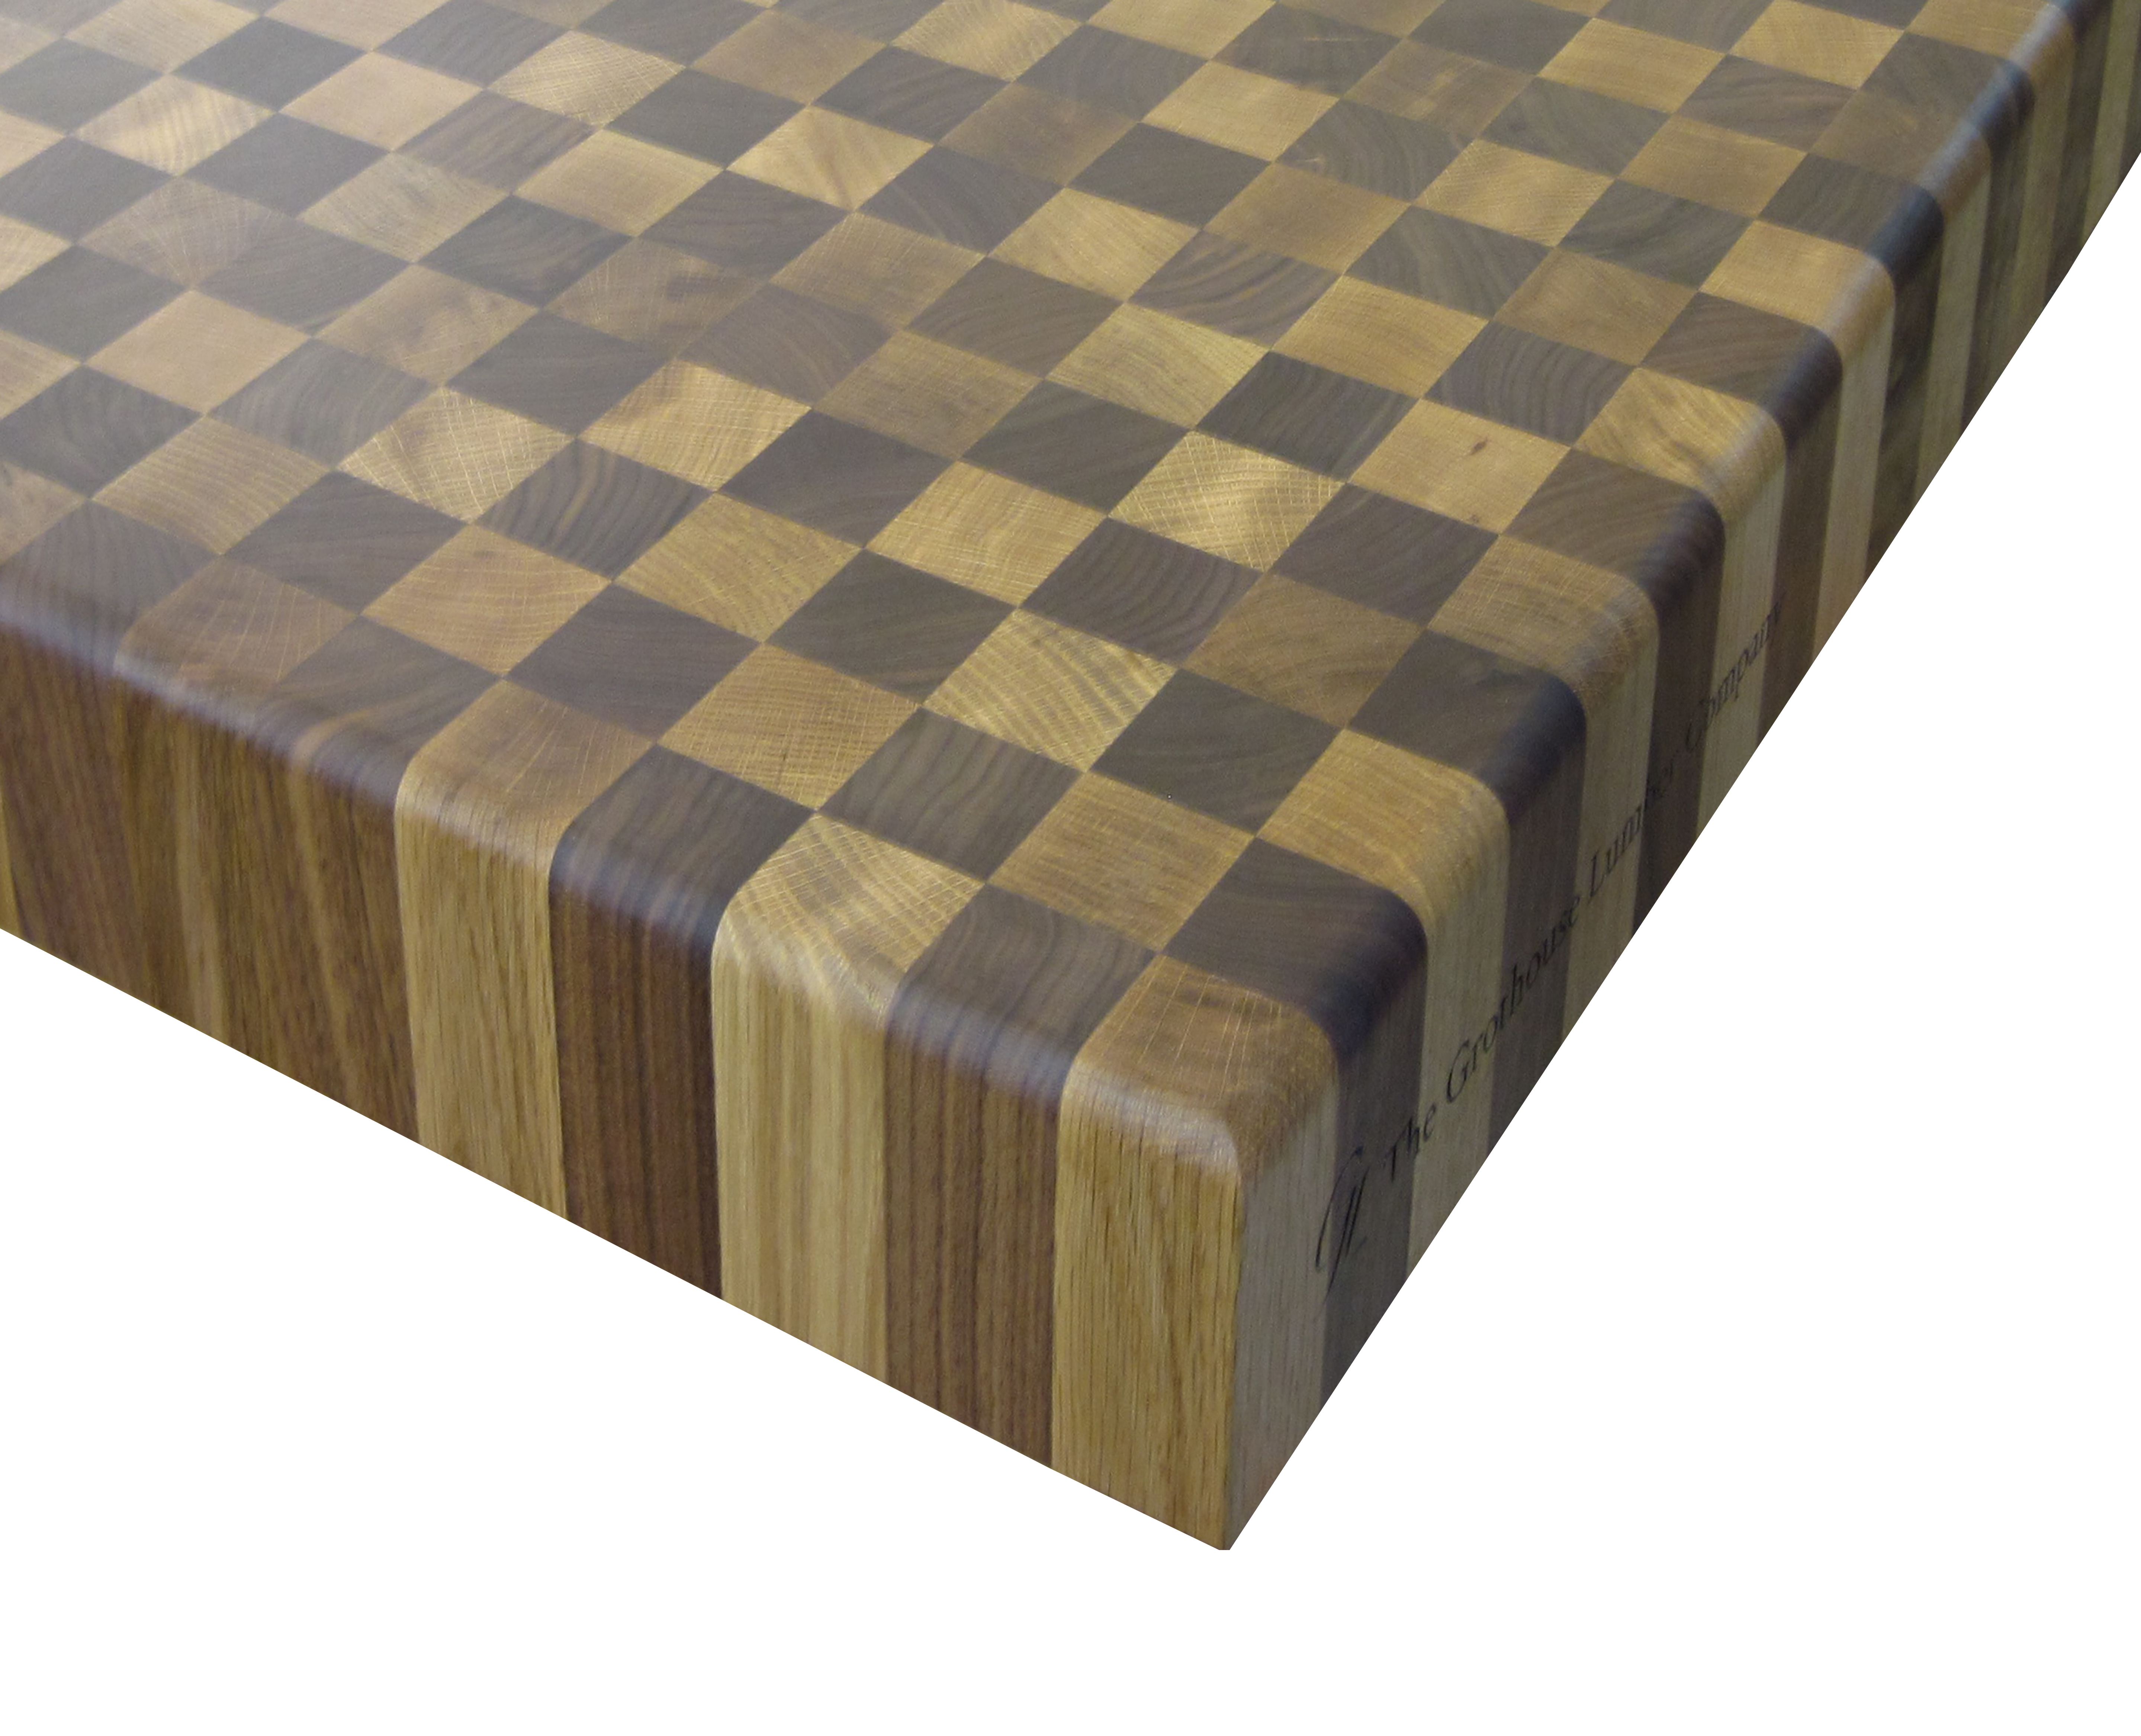 Large maple with wenge butcher block countertop in pennsylvania - Large Maple With Wenge Butcher Block Countertop In Pennsylvania Checkerboard Butcher Blocks By Grothouse Download